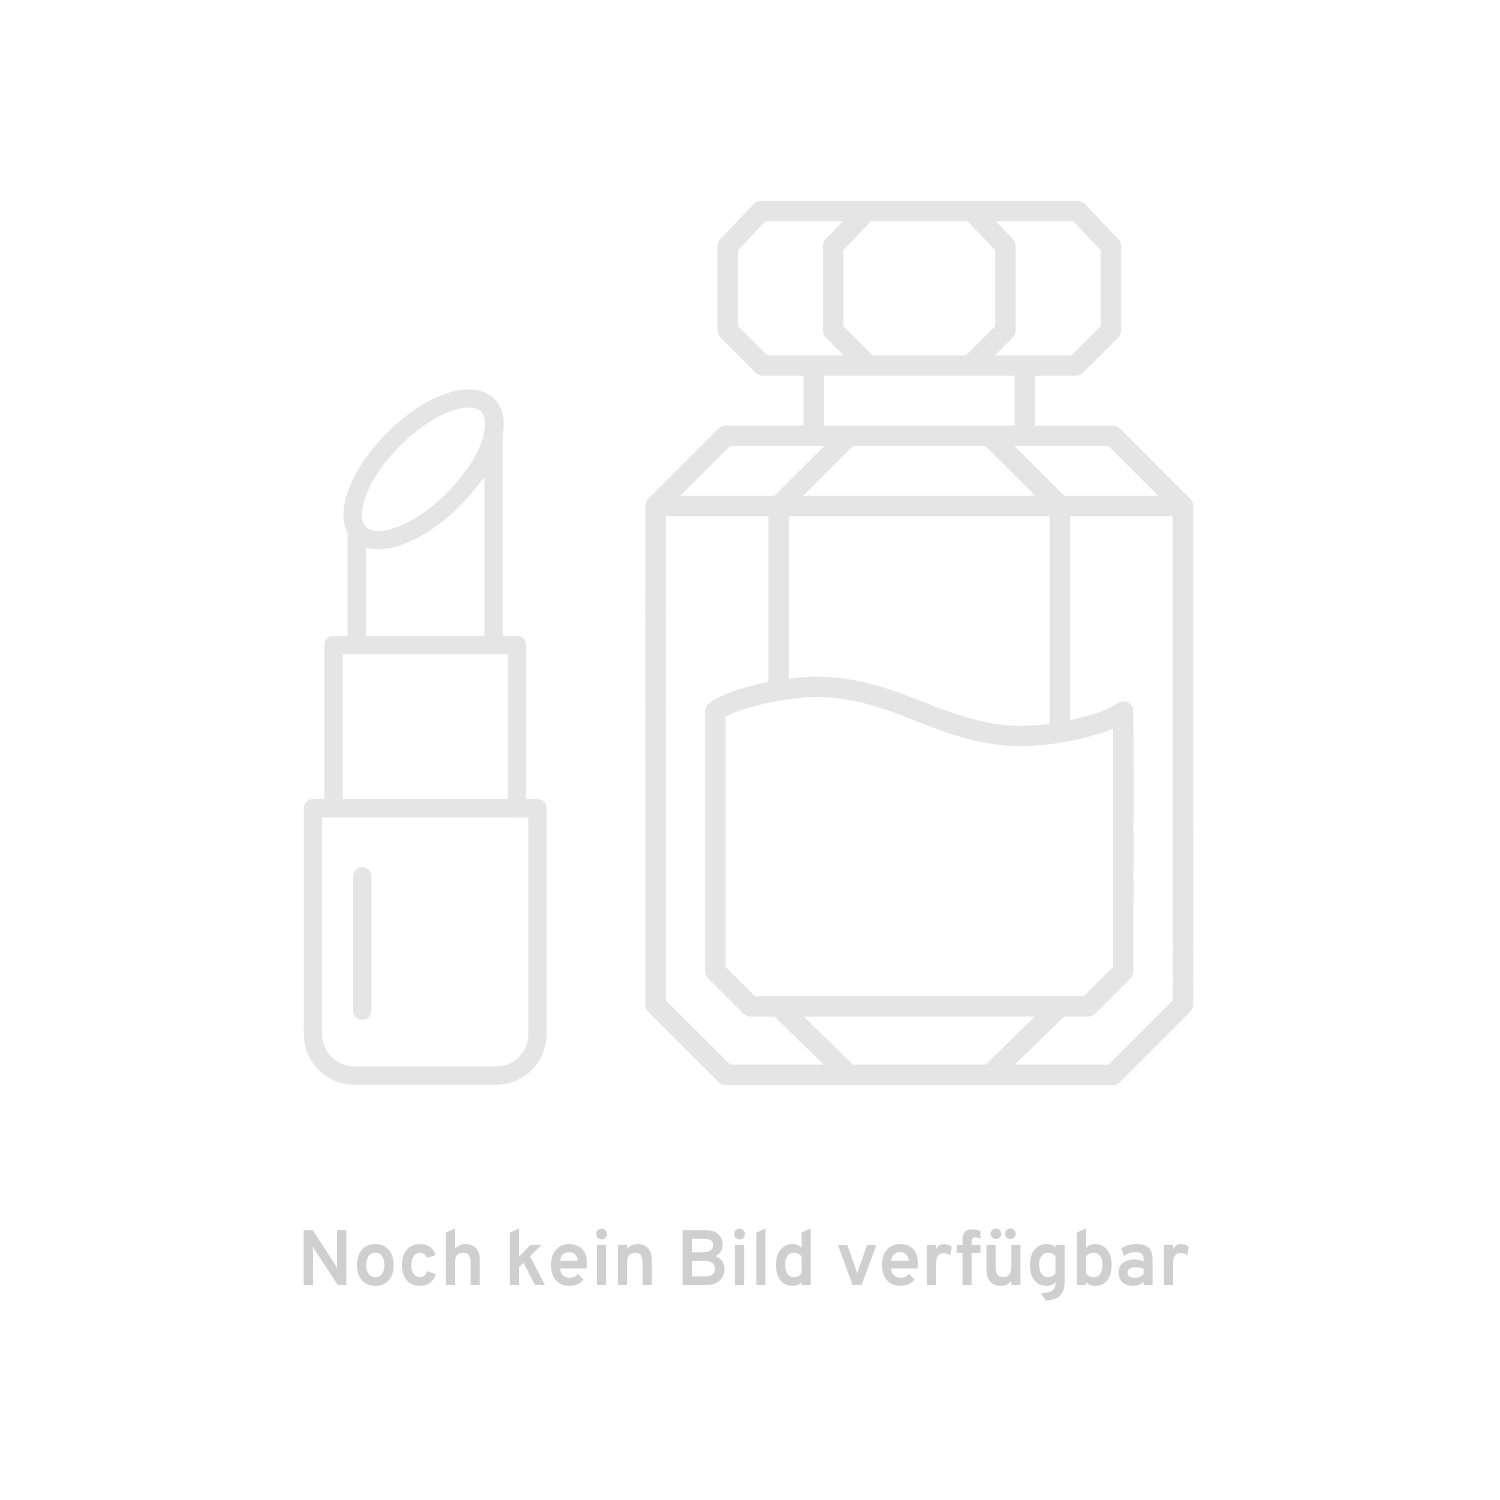 air lift spray von curaprox bestellen bei ludwig beck beauty online. Black Bedroom Furniture Sets. Home Design Ideas